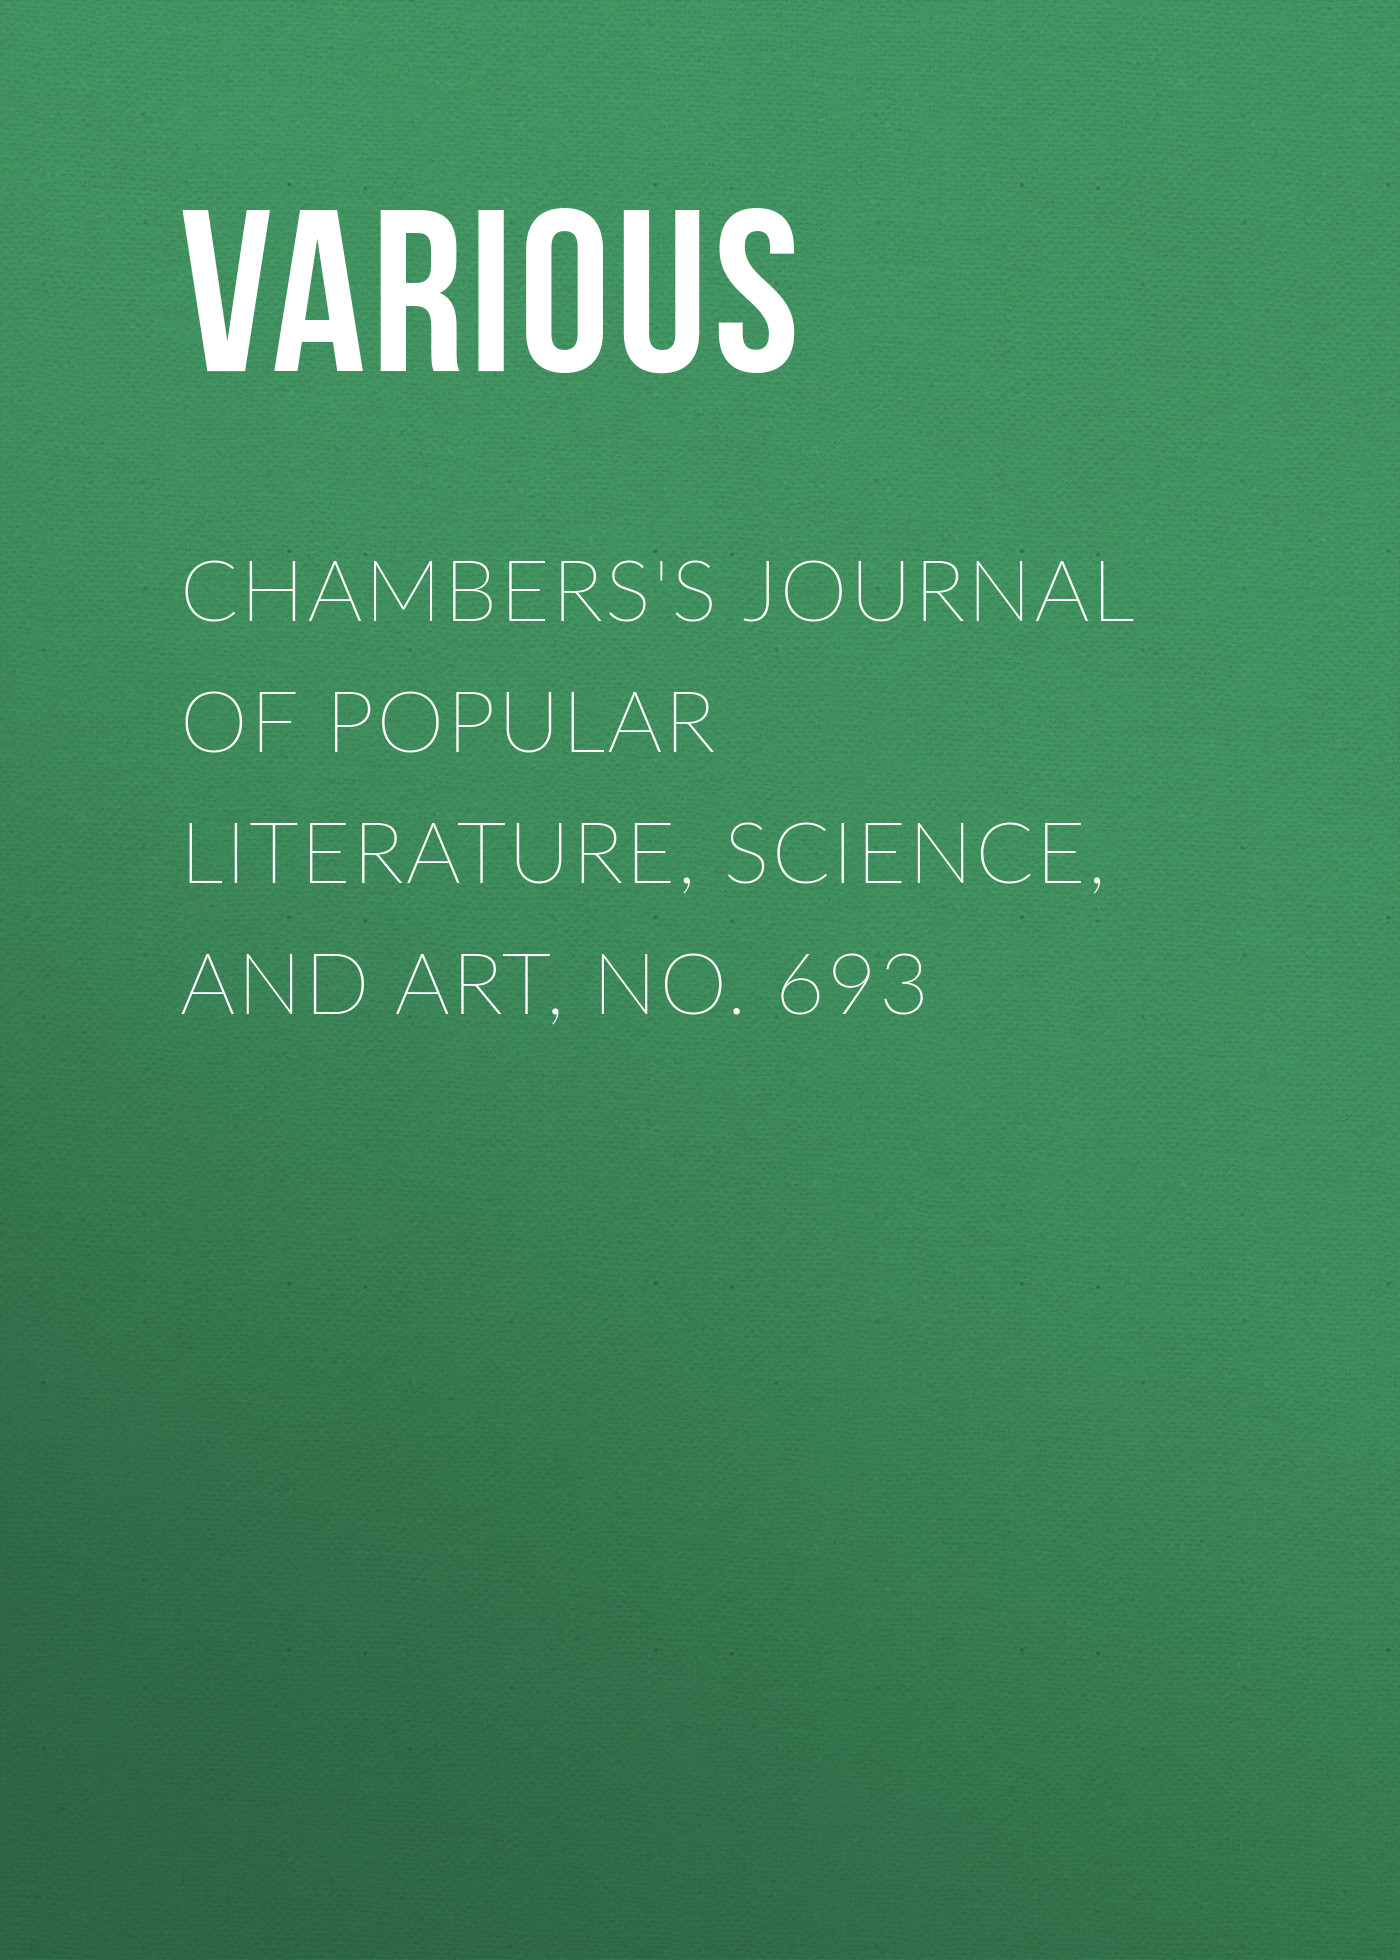 Various Chambers's Journal of Popular Literature, Science, and Art, No. 693